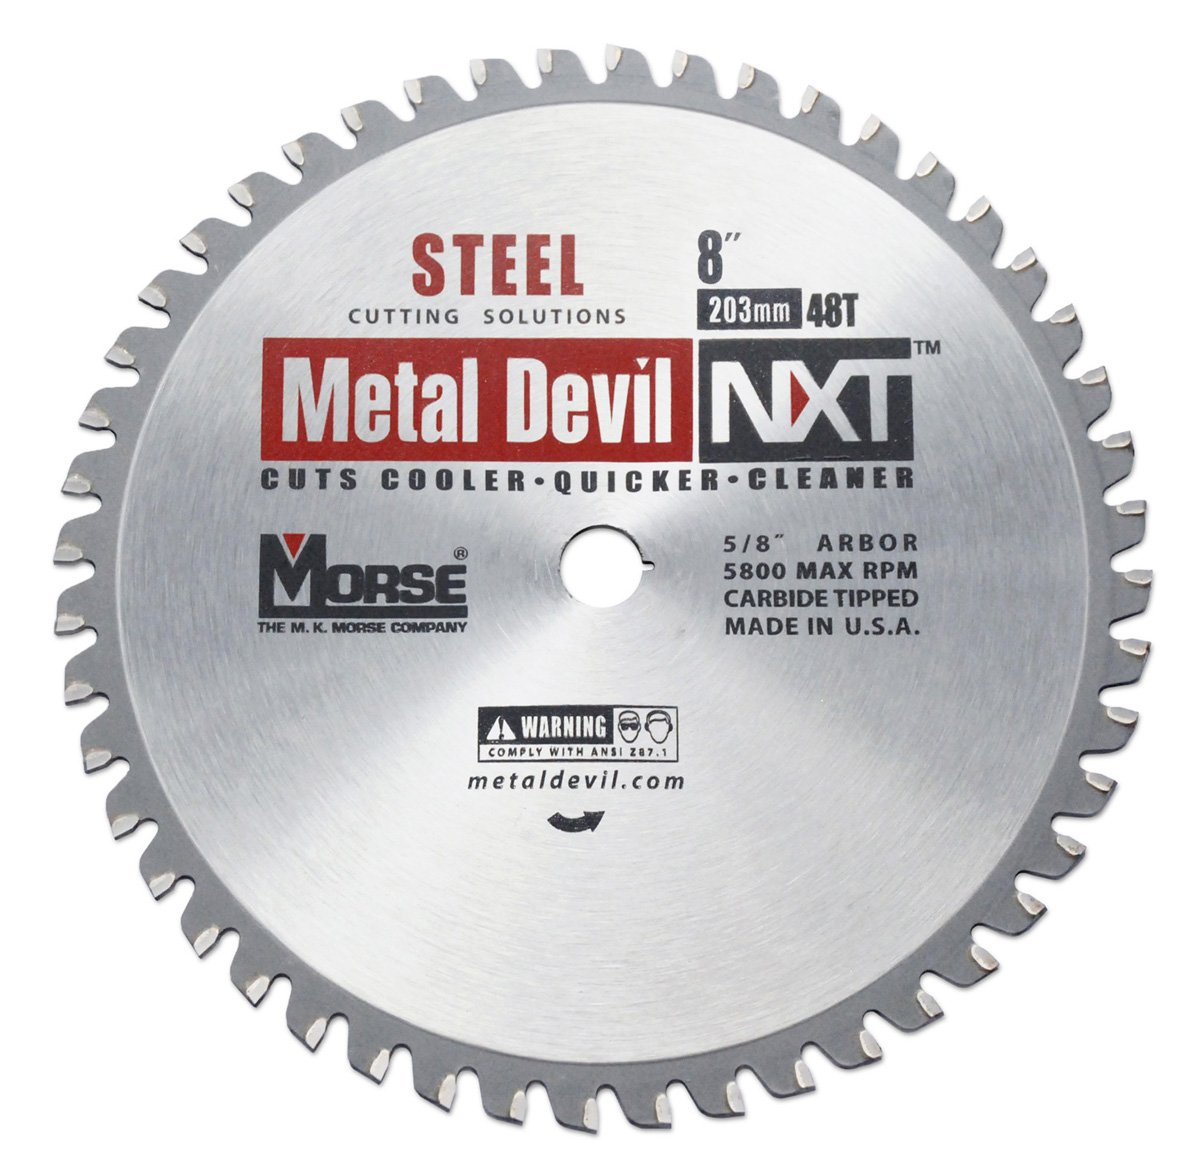 Mk morse csm848nsc metal devil nxt circular saw blade 8 inch mk morse csm848nsc metal devil nxt circular saw blade 8 inch diameter 48 teeth 58 inch arbor for steel cutting amazon keyboard keysfo Image collections